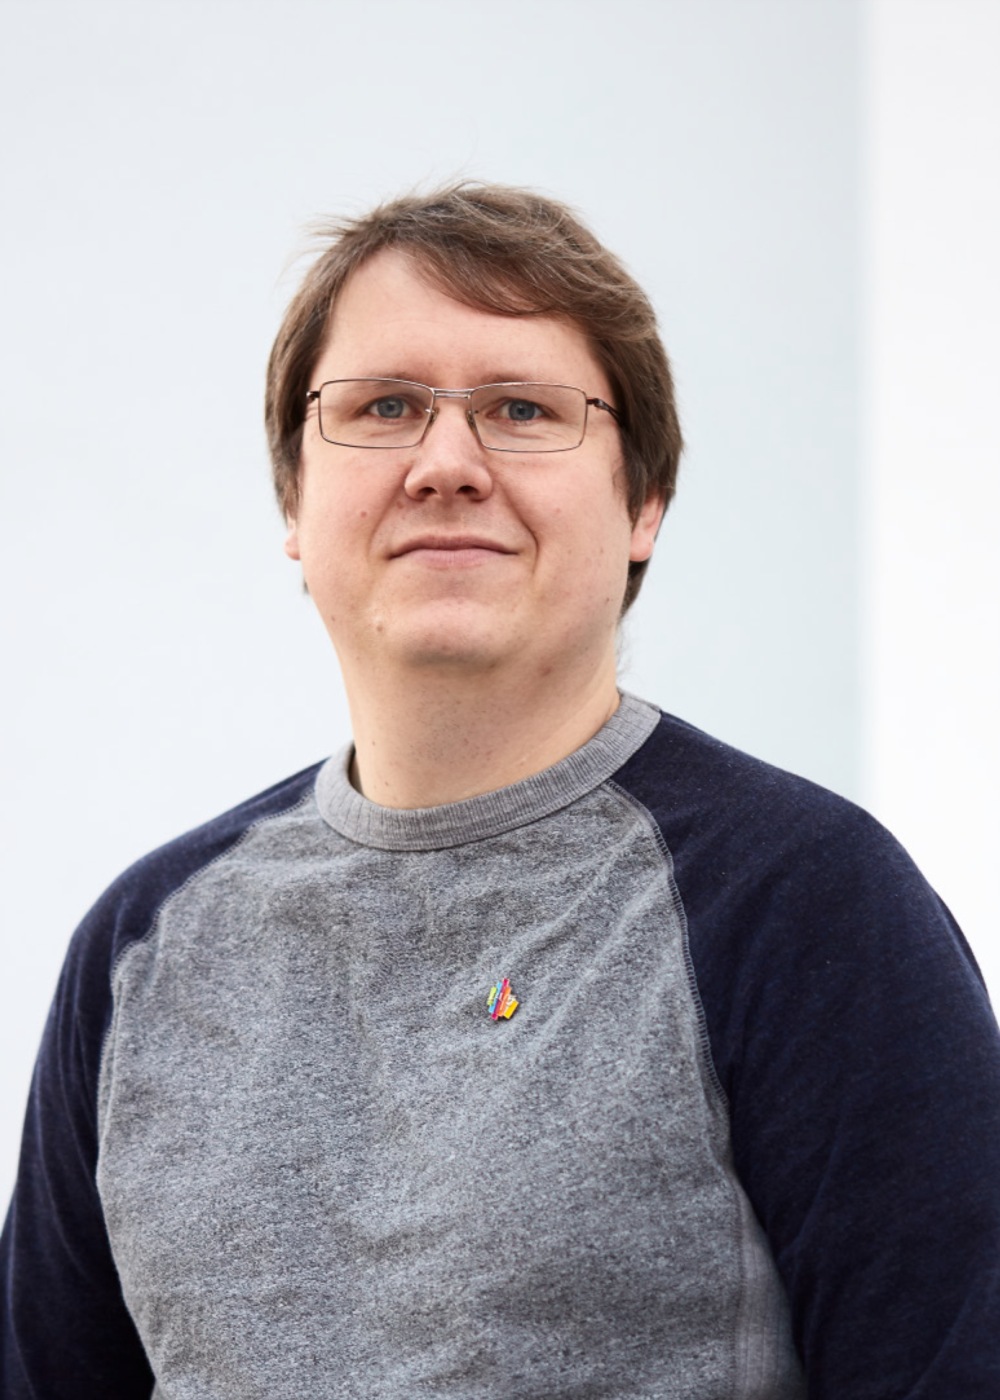 Kyrre Alerud is an engineer with experience from Nordic Semiconductor and Prevas. Computer engineer from the University of Oslo and has more than 15 years experience with embedded software development.    Phone:    +47 997 19 919    Email:    ka@hy5.no